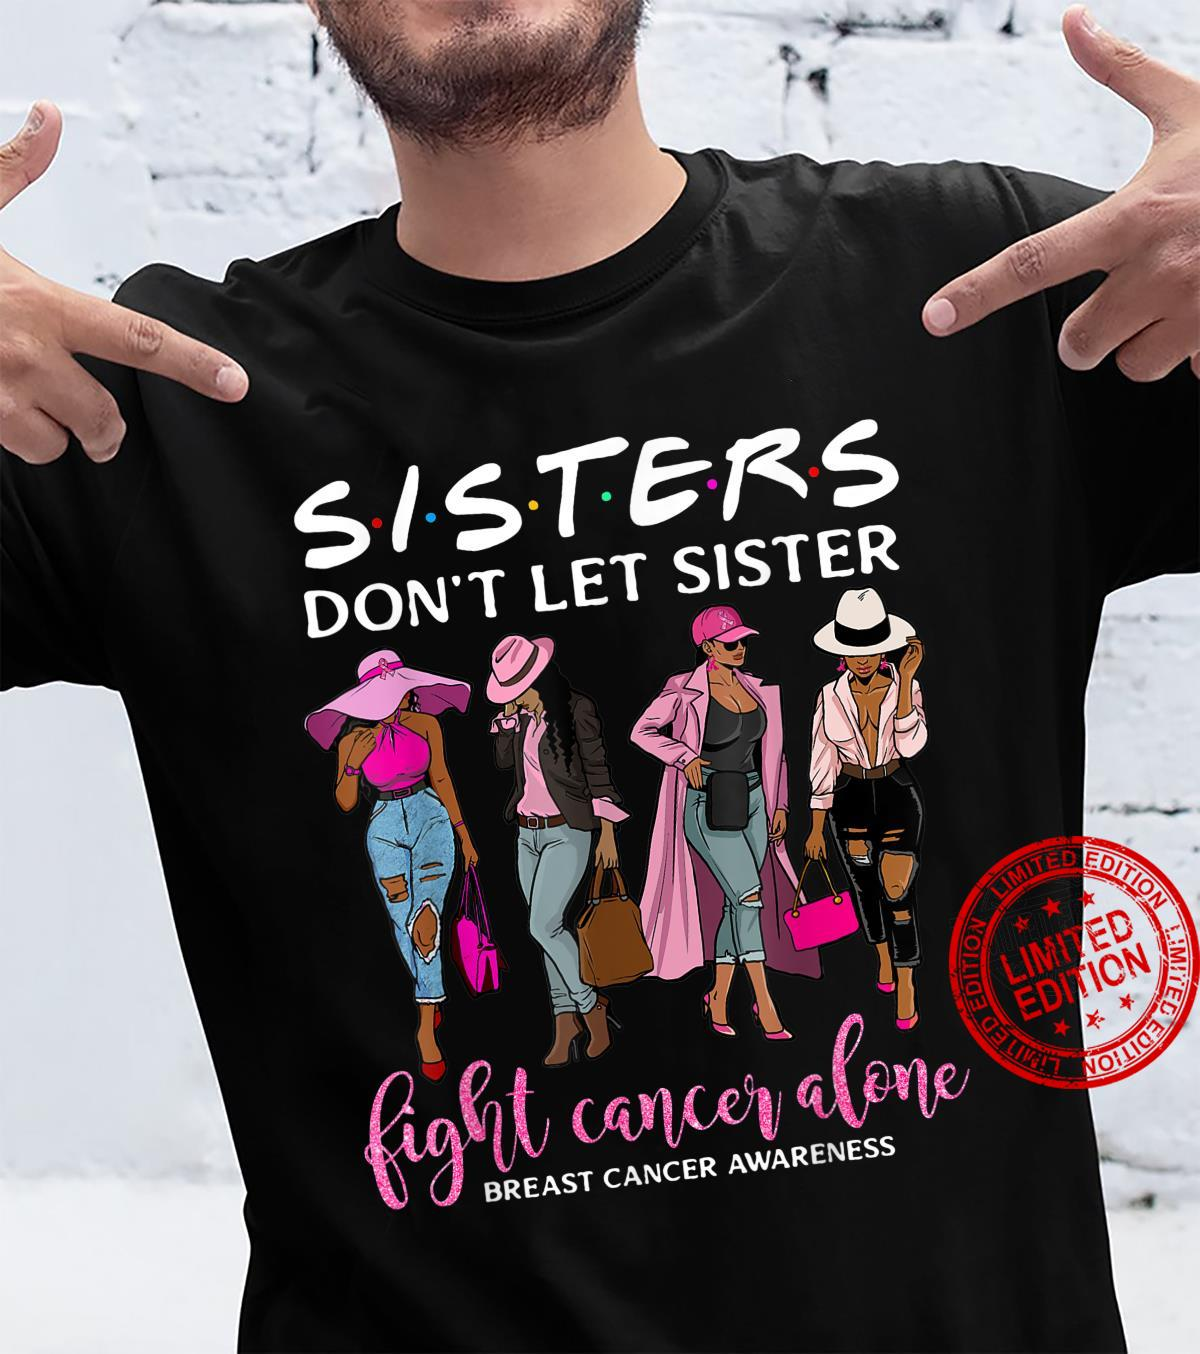 Don't Let Sister Fight Cancer Alone Breast Cancer Awareness Shirt